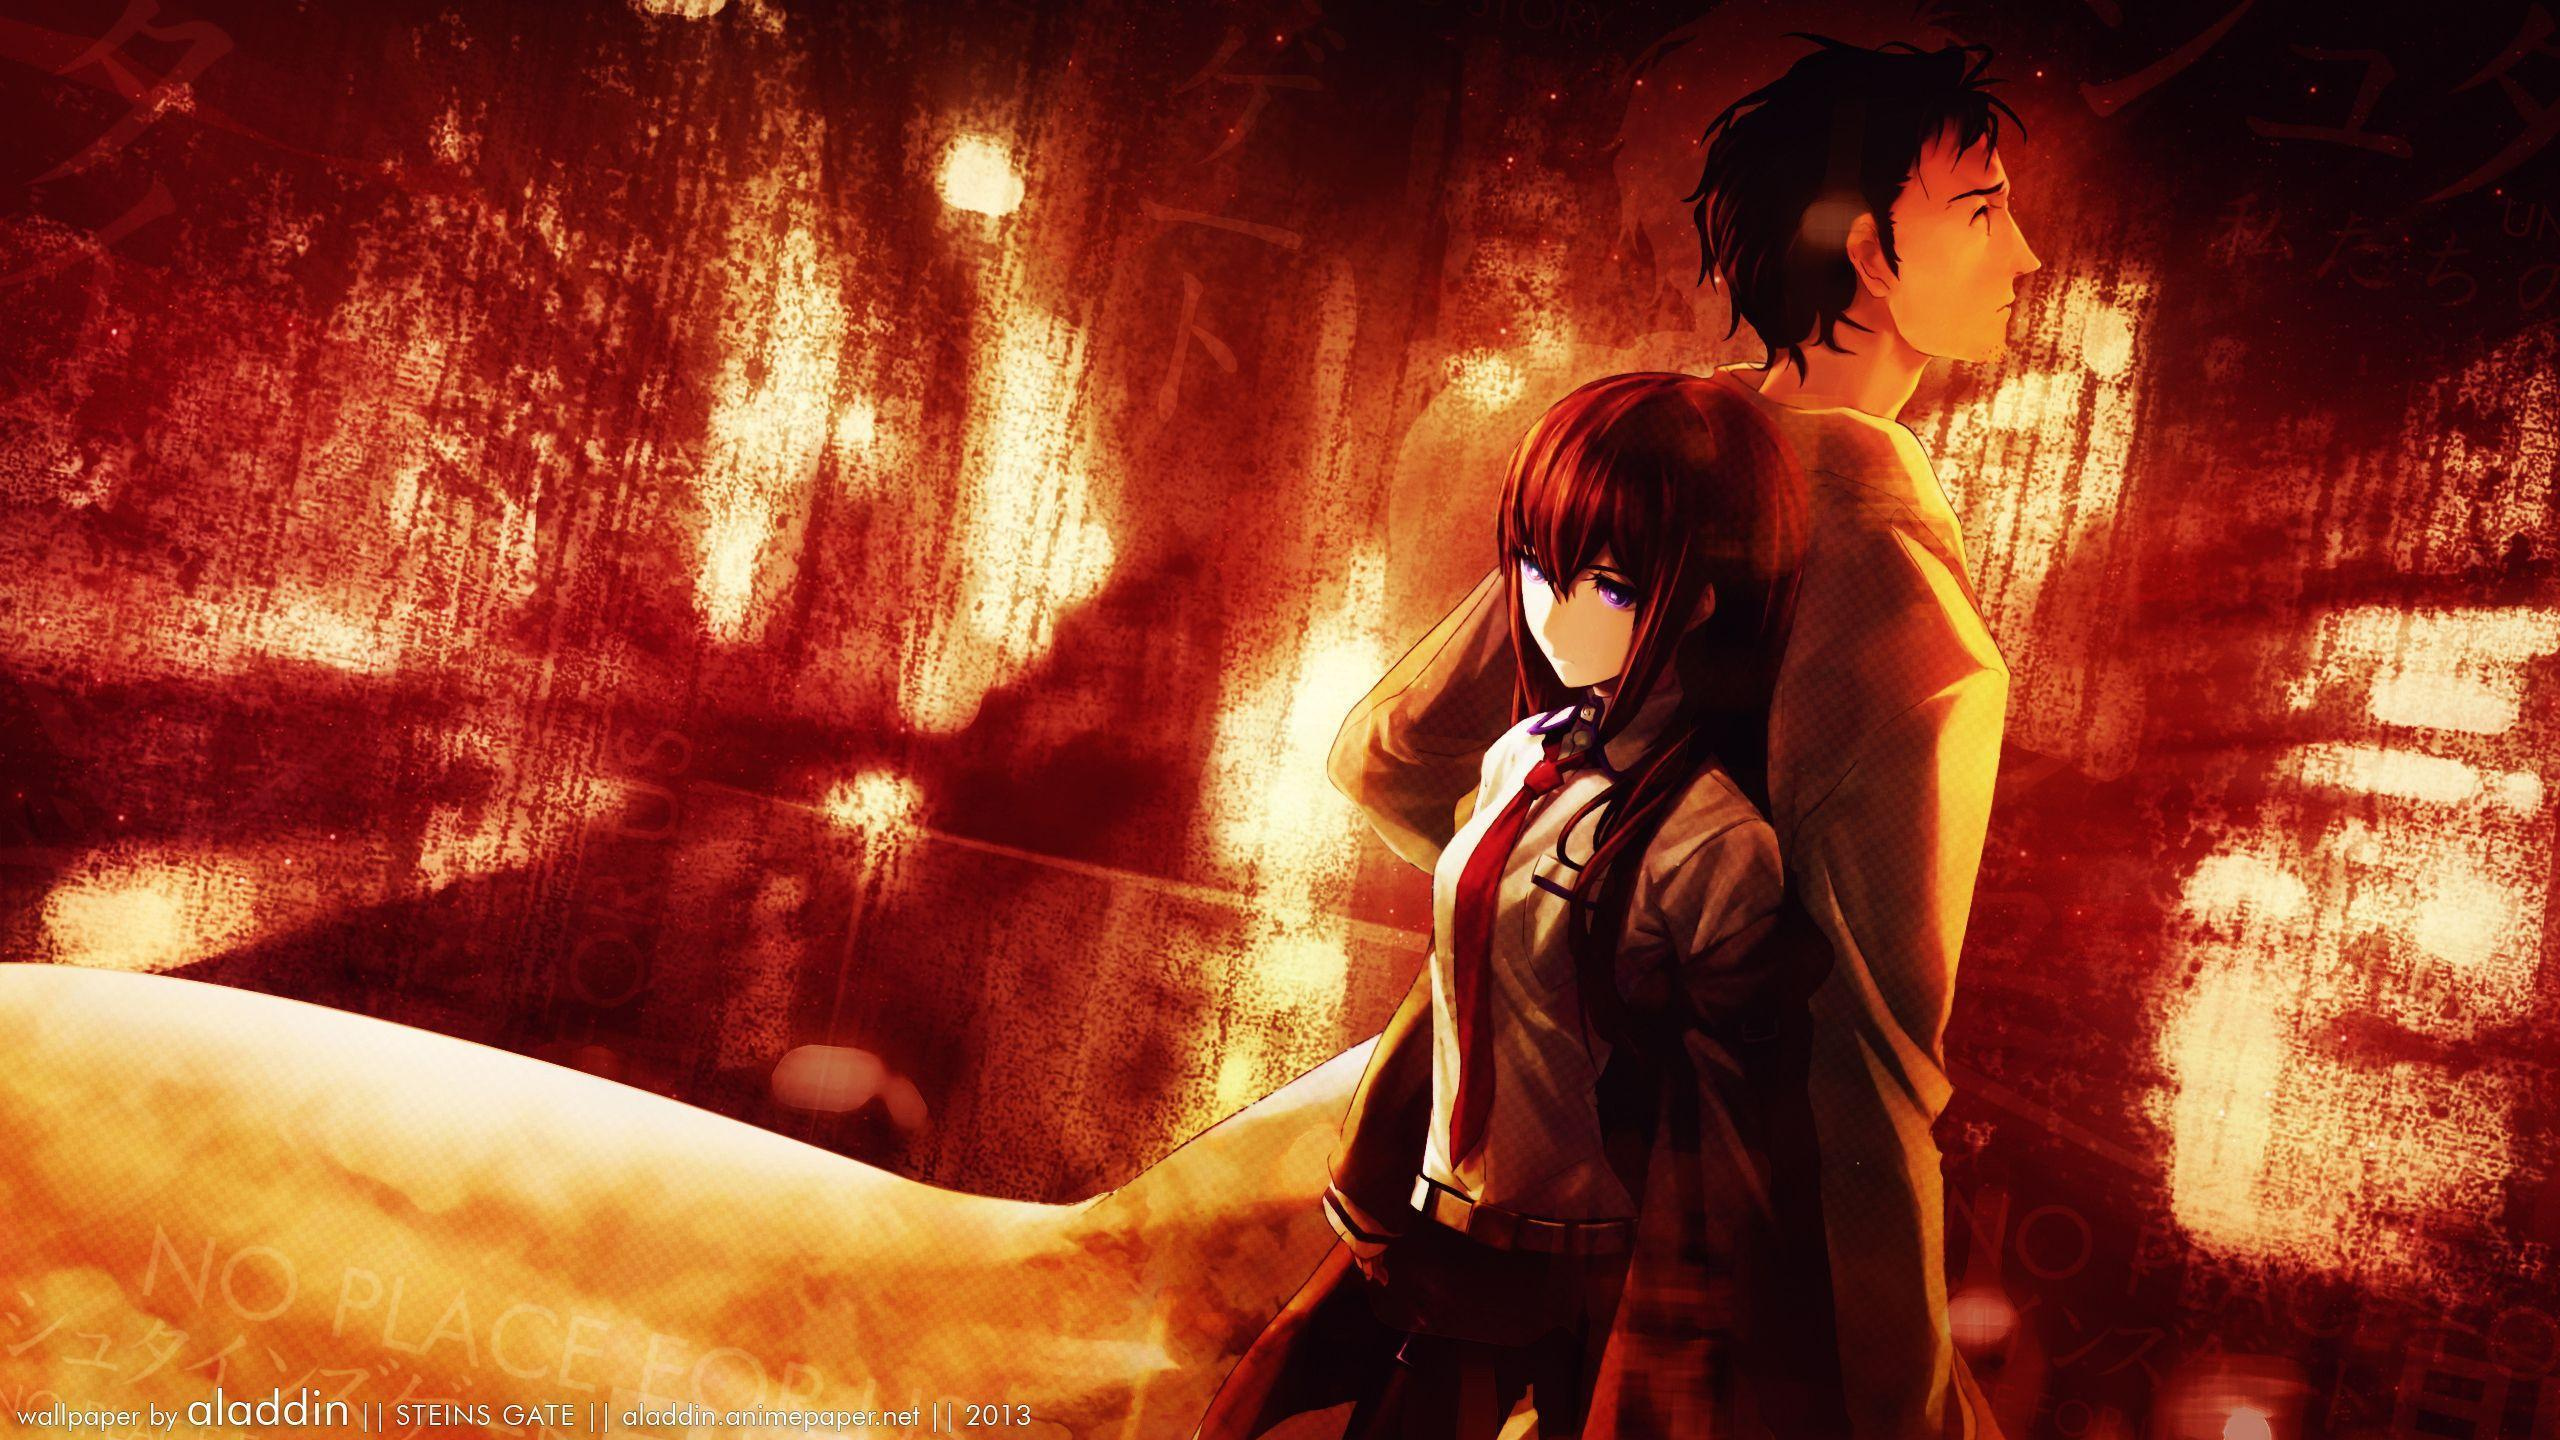 1000+ image about Steins;Gate